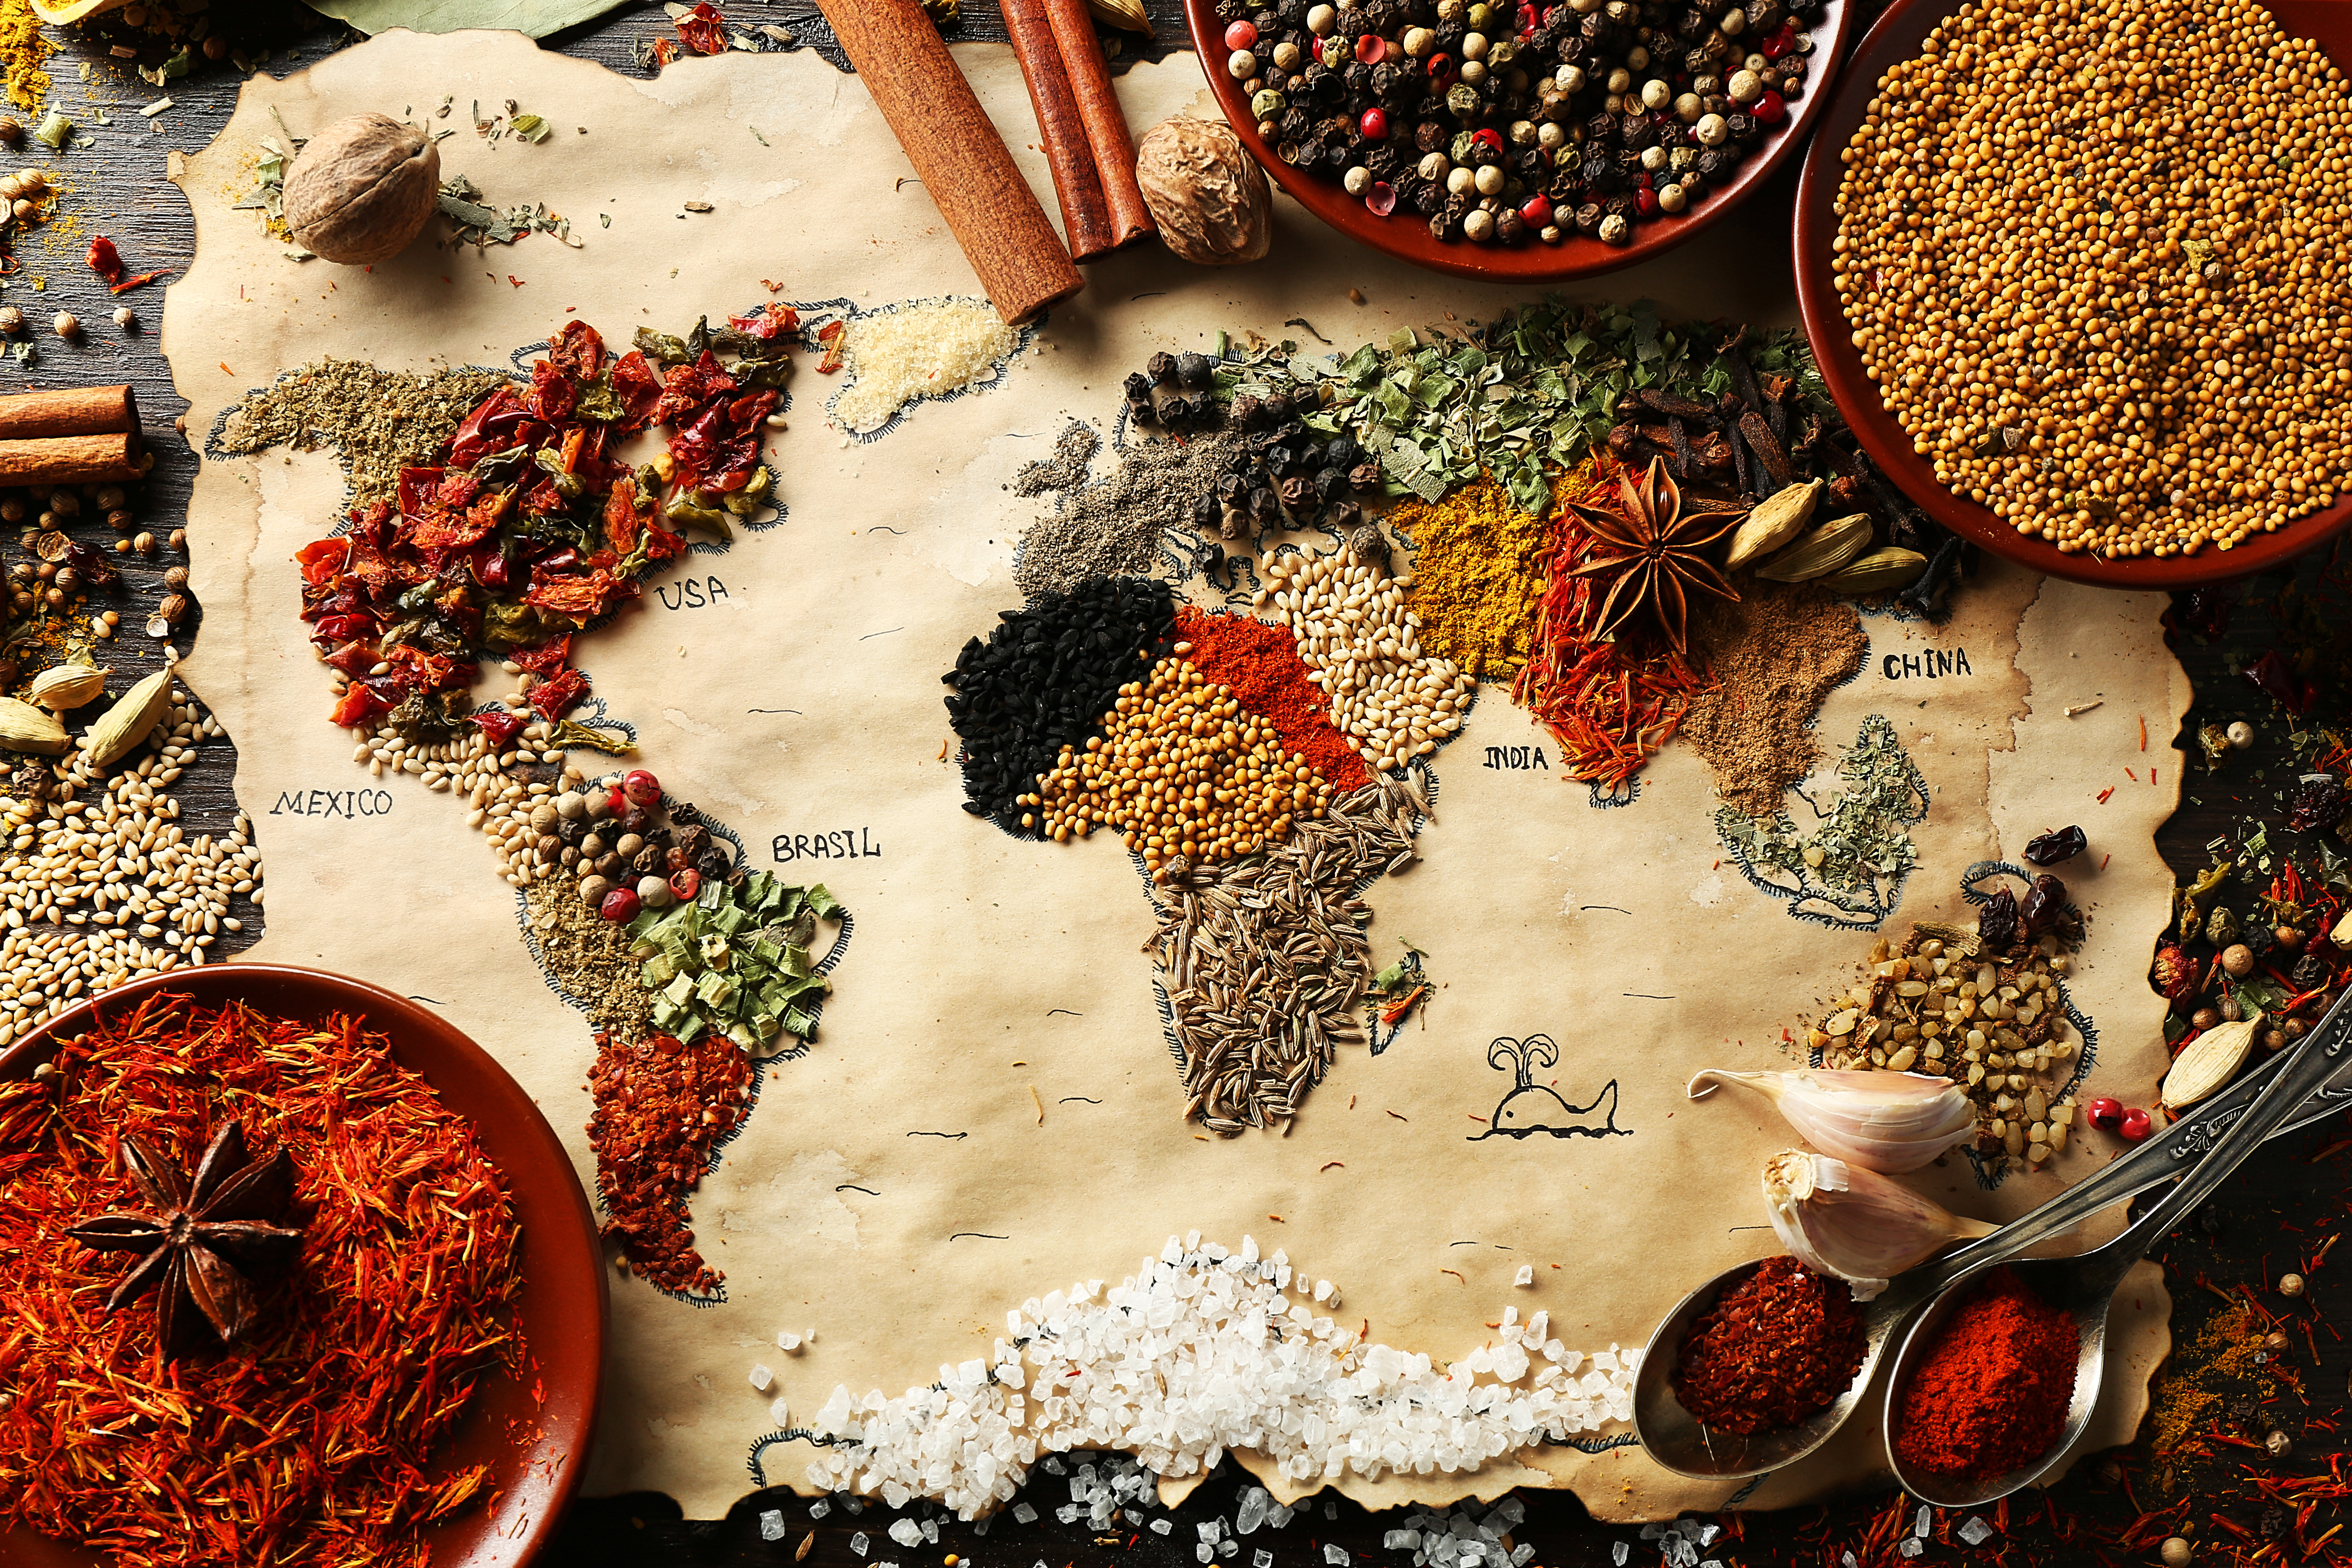 Fosters-Live-To-Eat-Culture-World-Map-Food-Grains